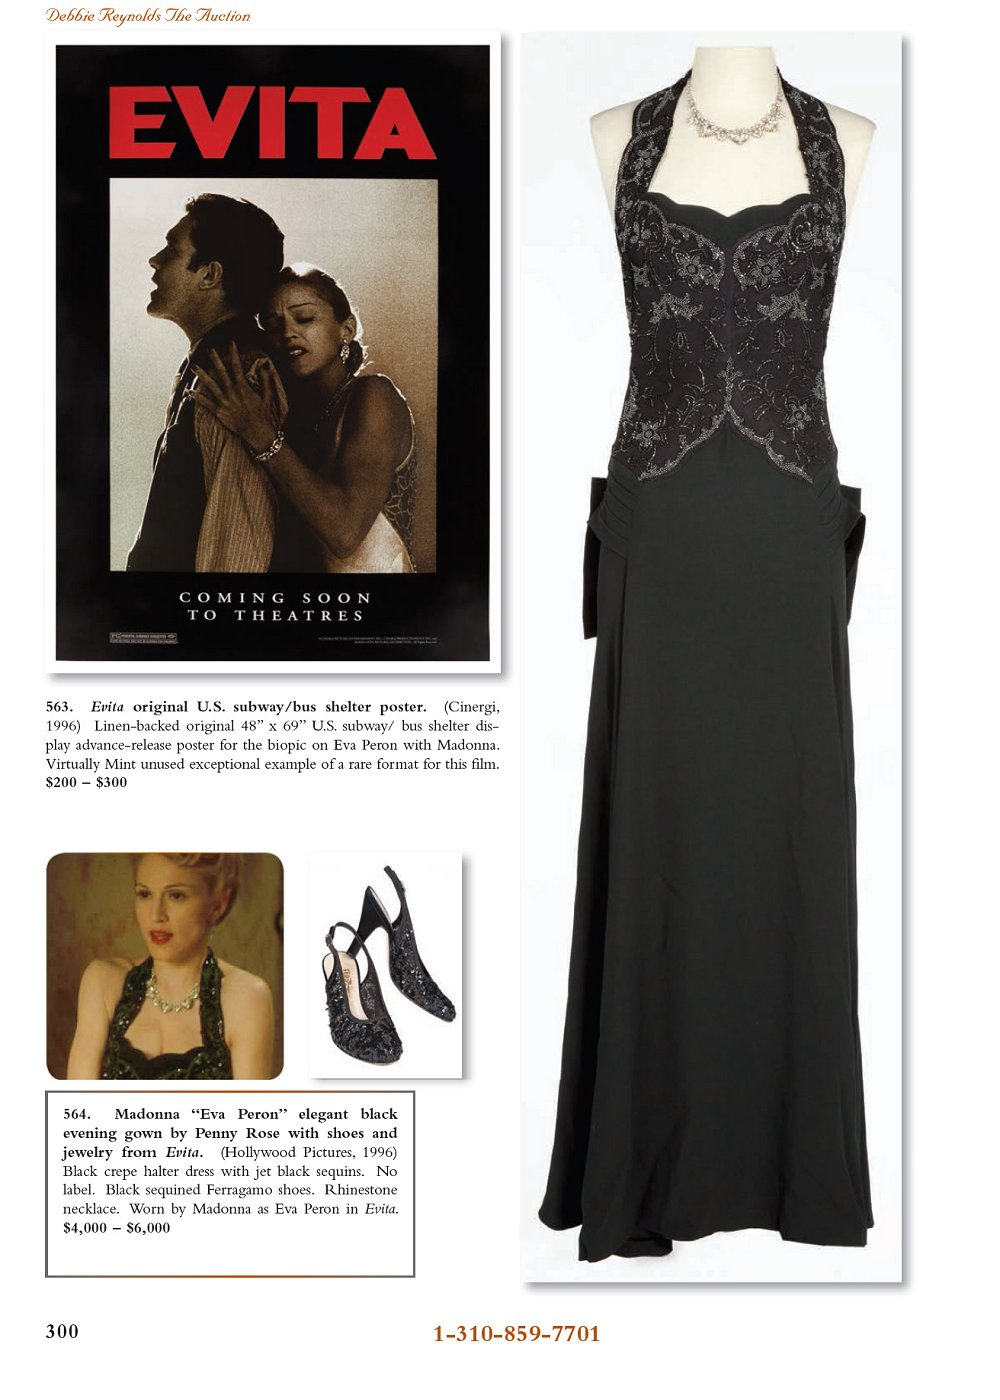 Madonna Evita costume up for auction  sc 1 st  Madonnalicious & madonnalicious: Madonna Evita costume up for auction